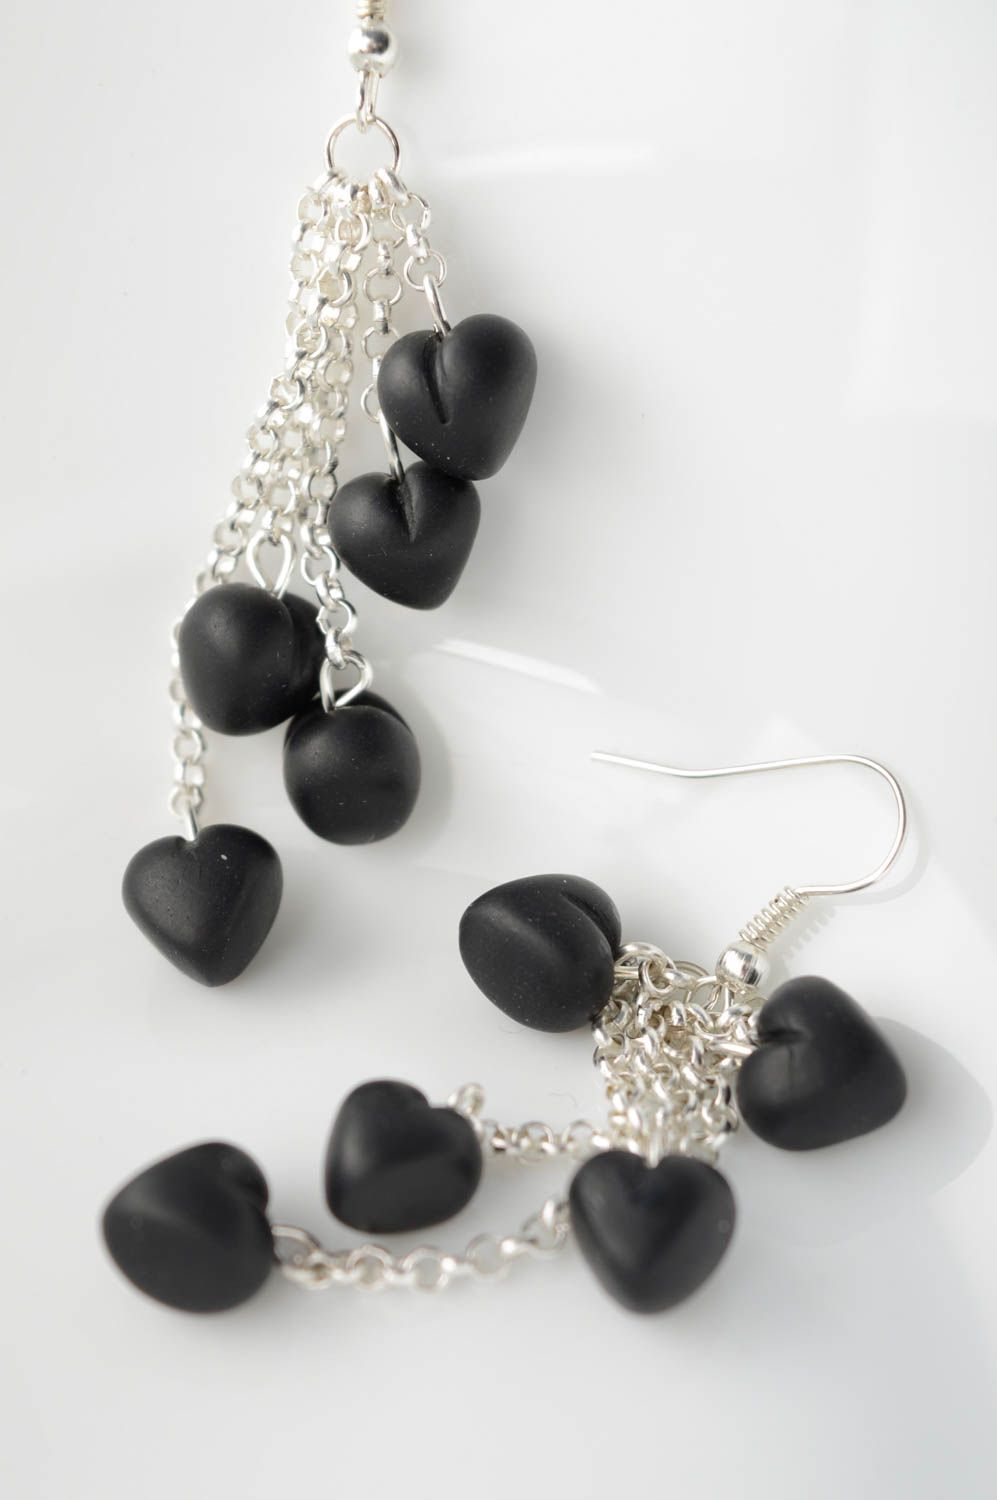 Polymer clay earrings with charms Black Heart photo 1